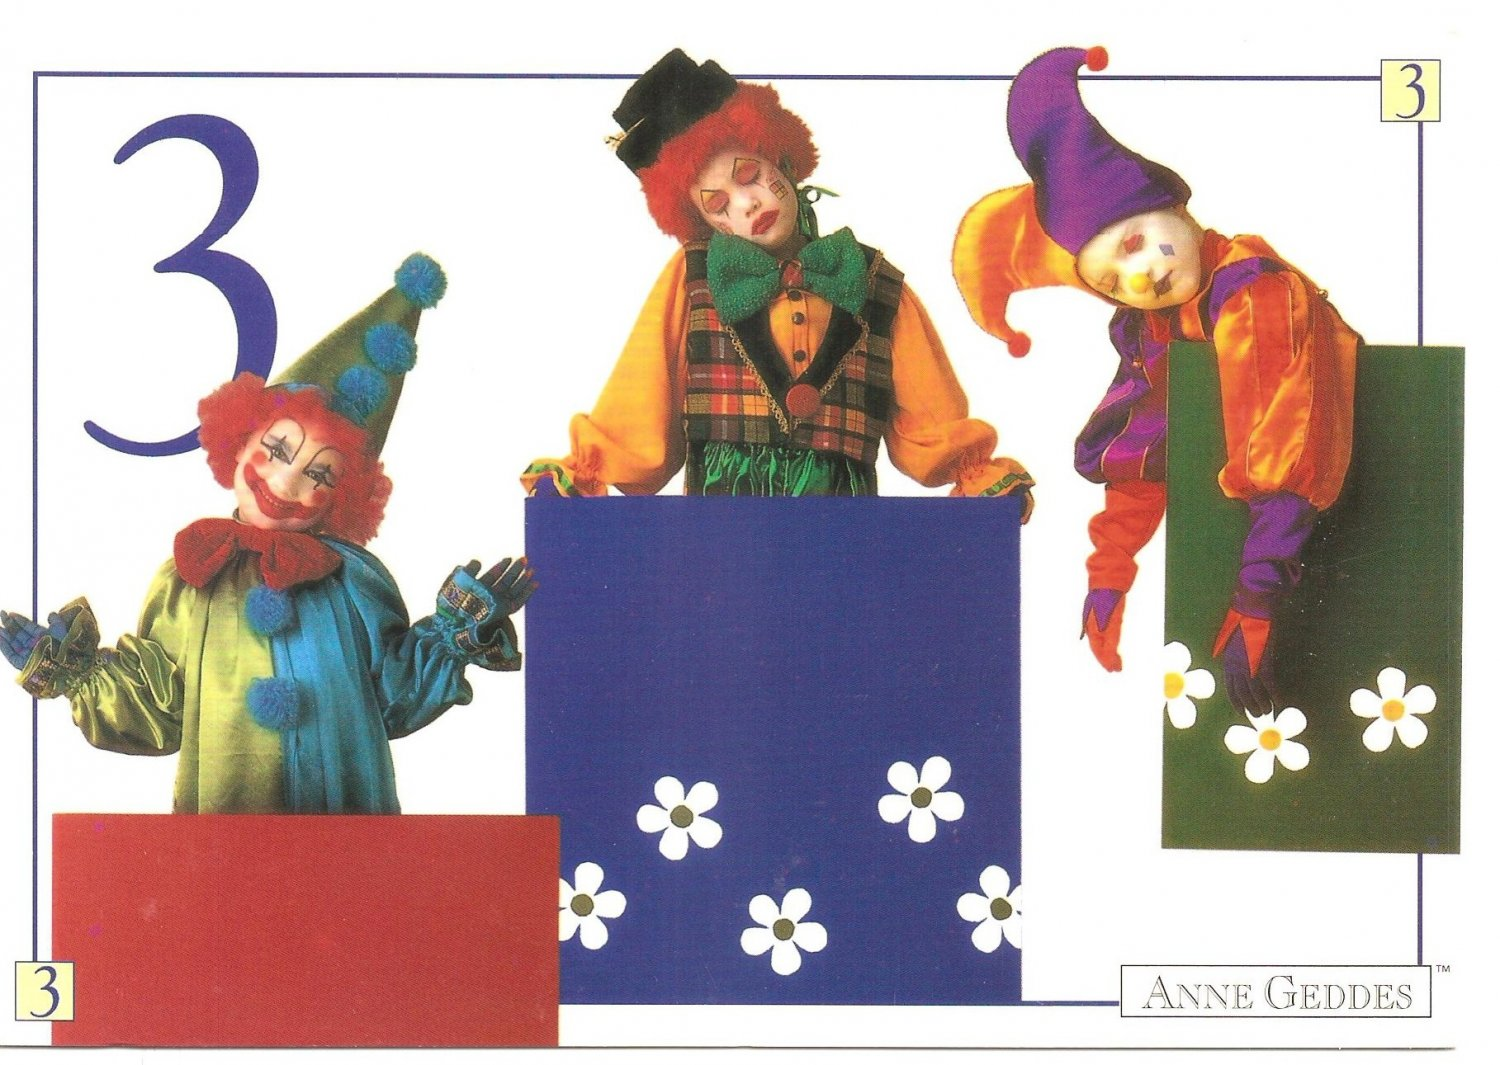 Anne Geddes Postcard 1995 605-082 3 Clown Baby 4x6